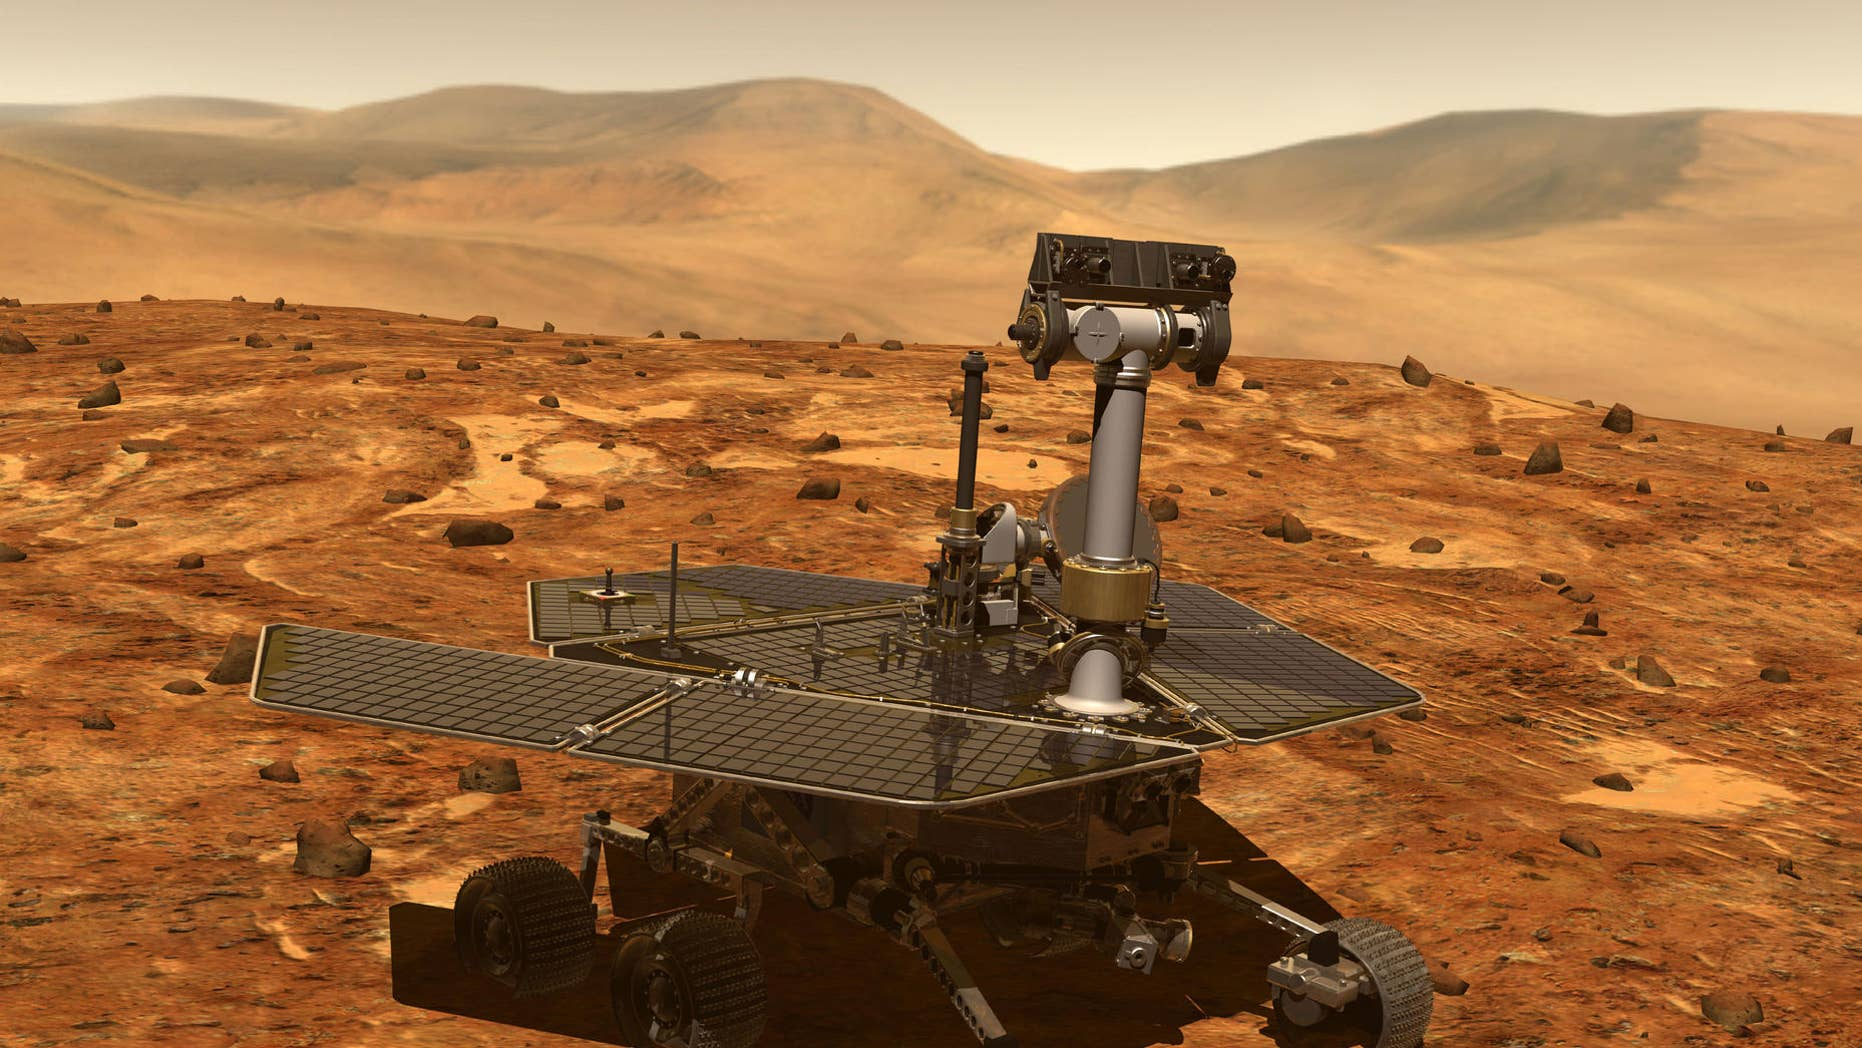 NASA trying to reestablish contact with Opportunity rover